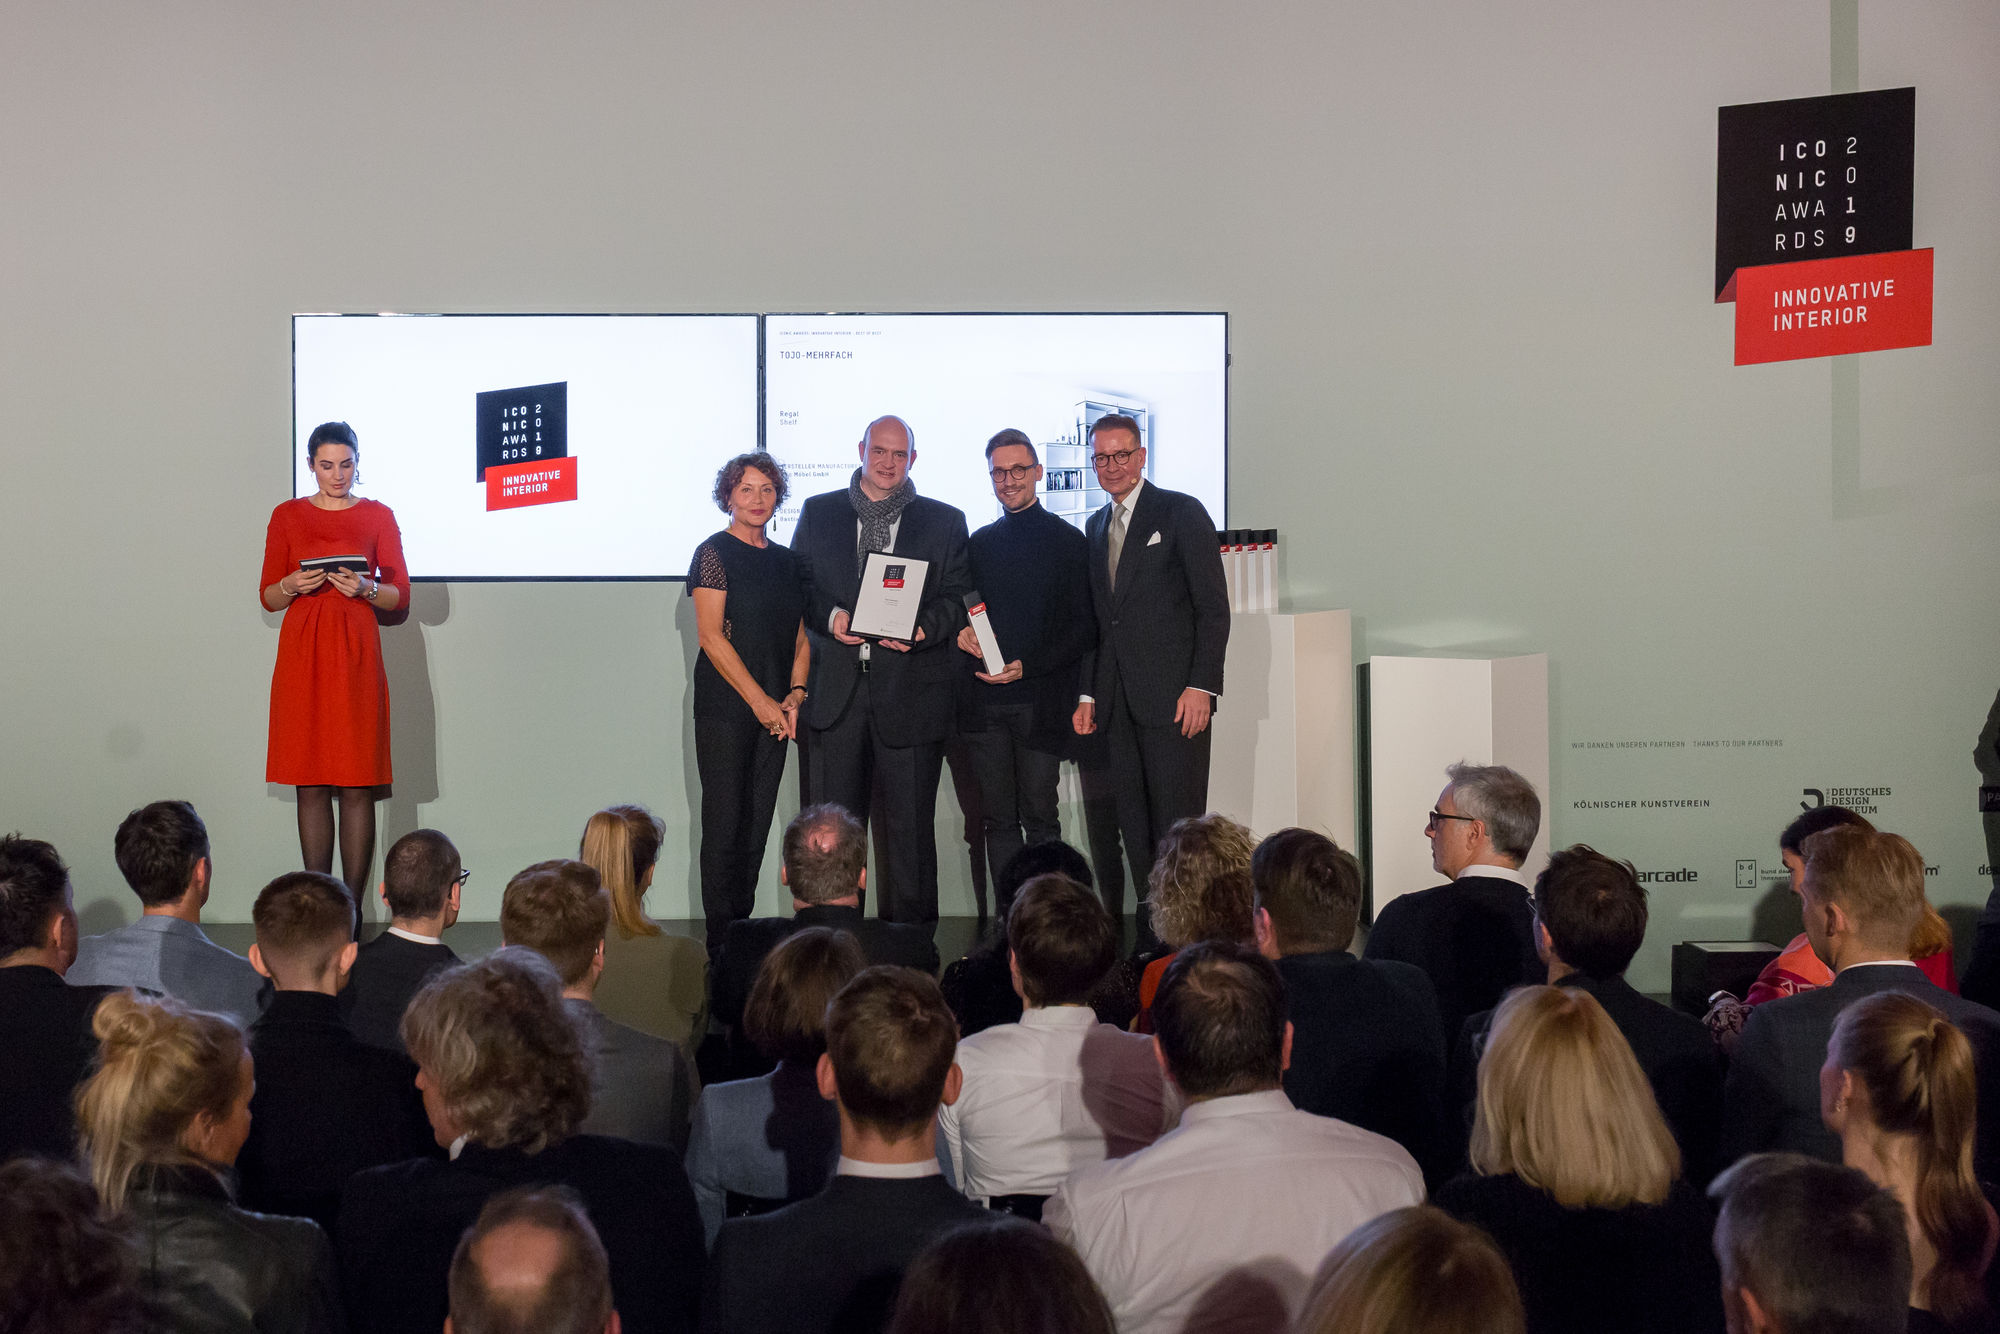 Iconic Award - imm Cologne